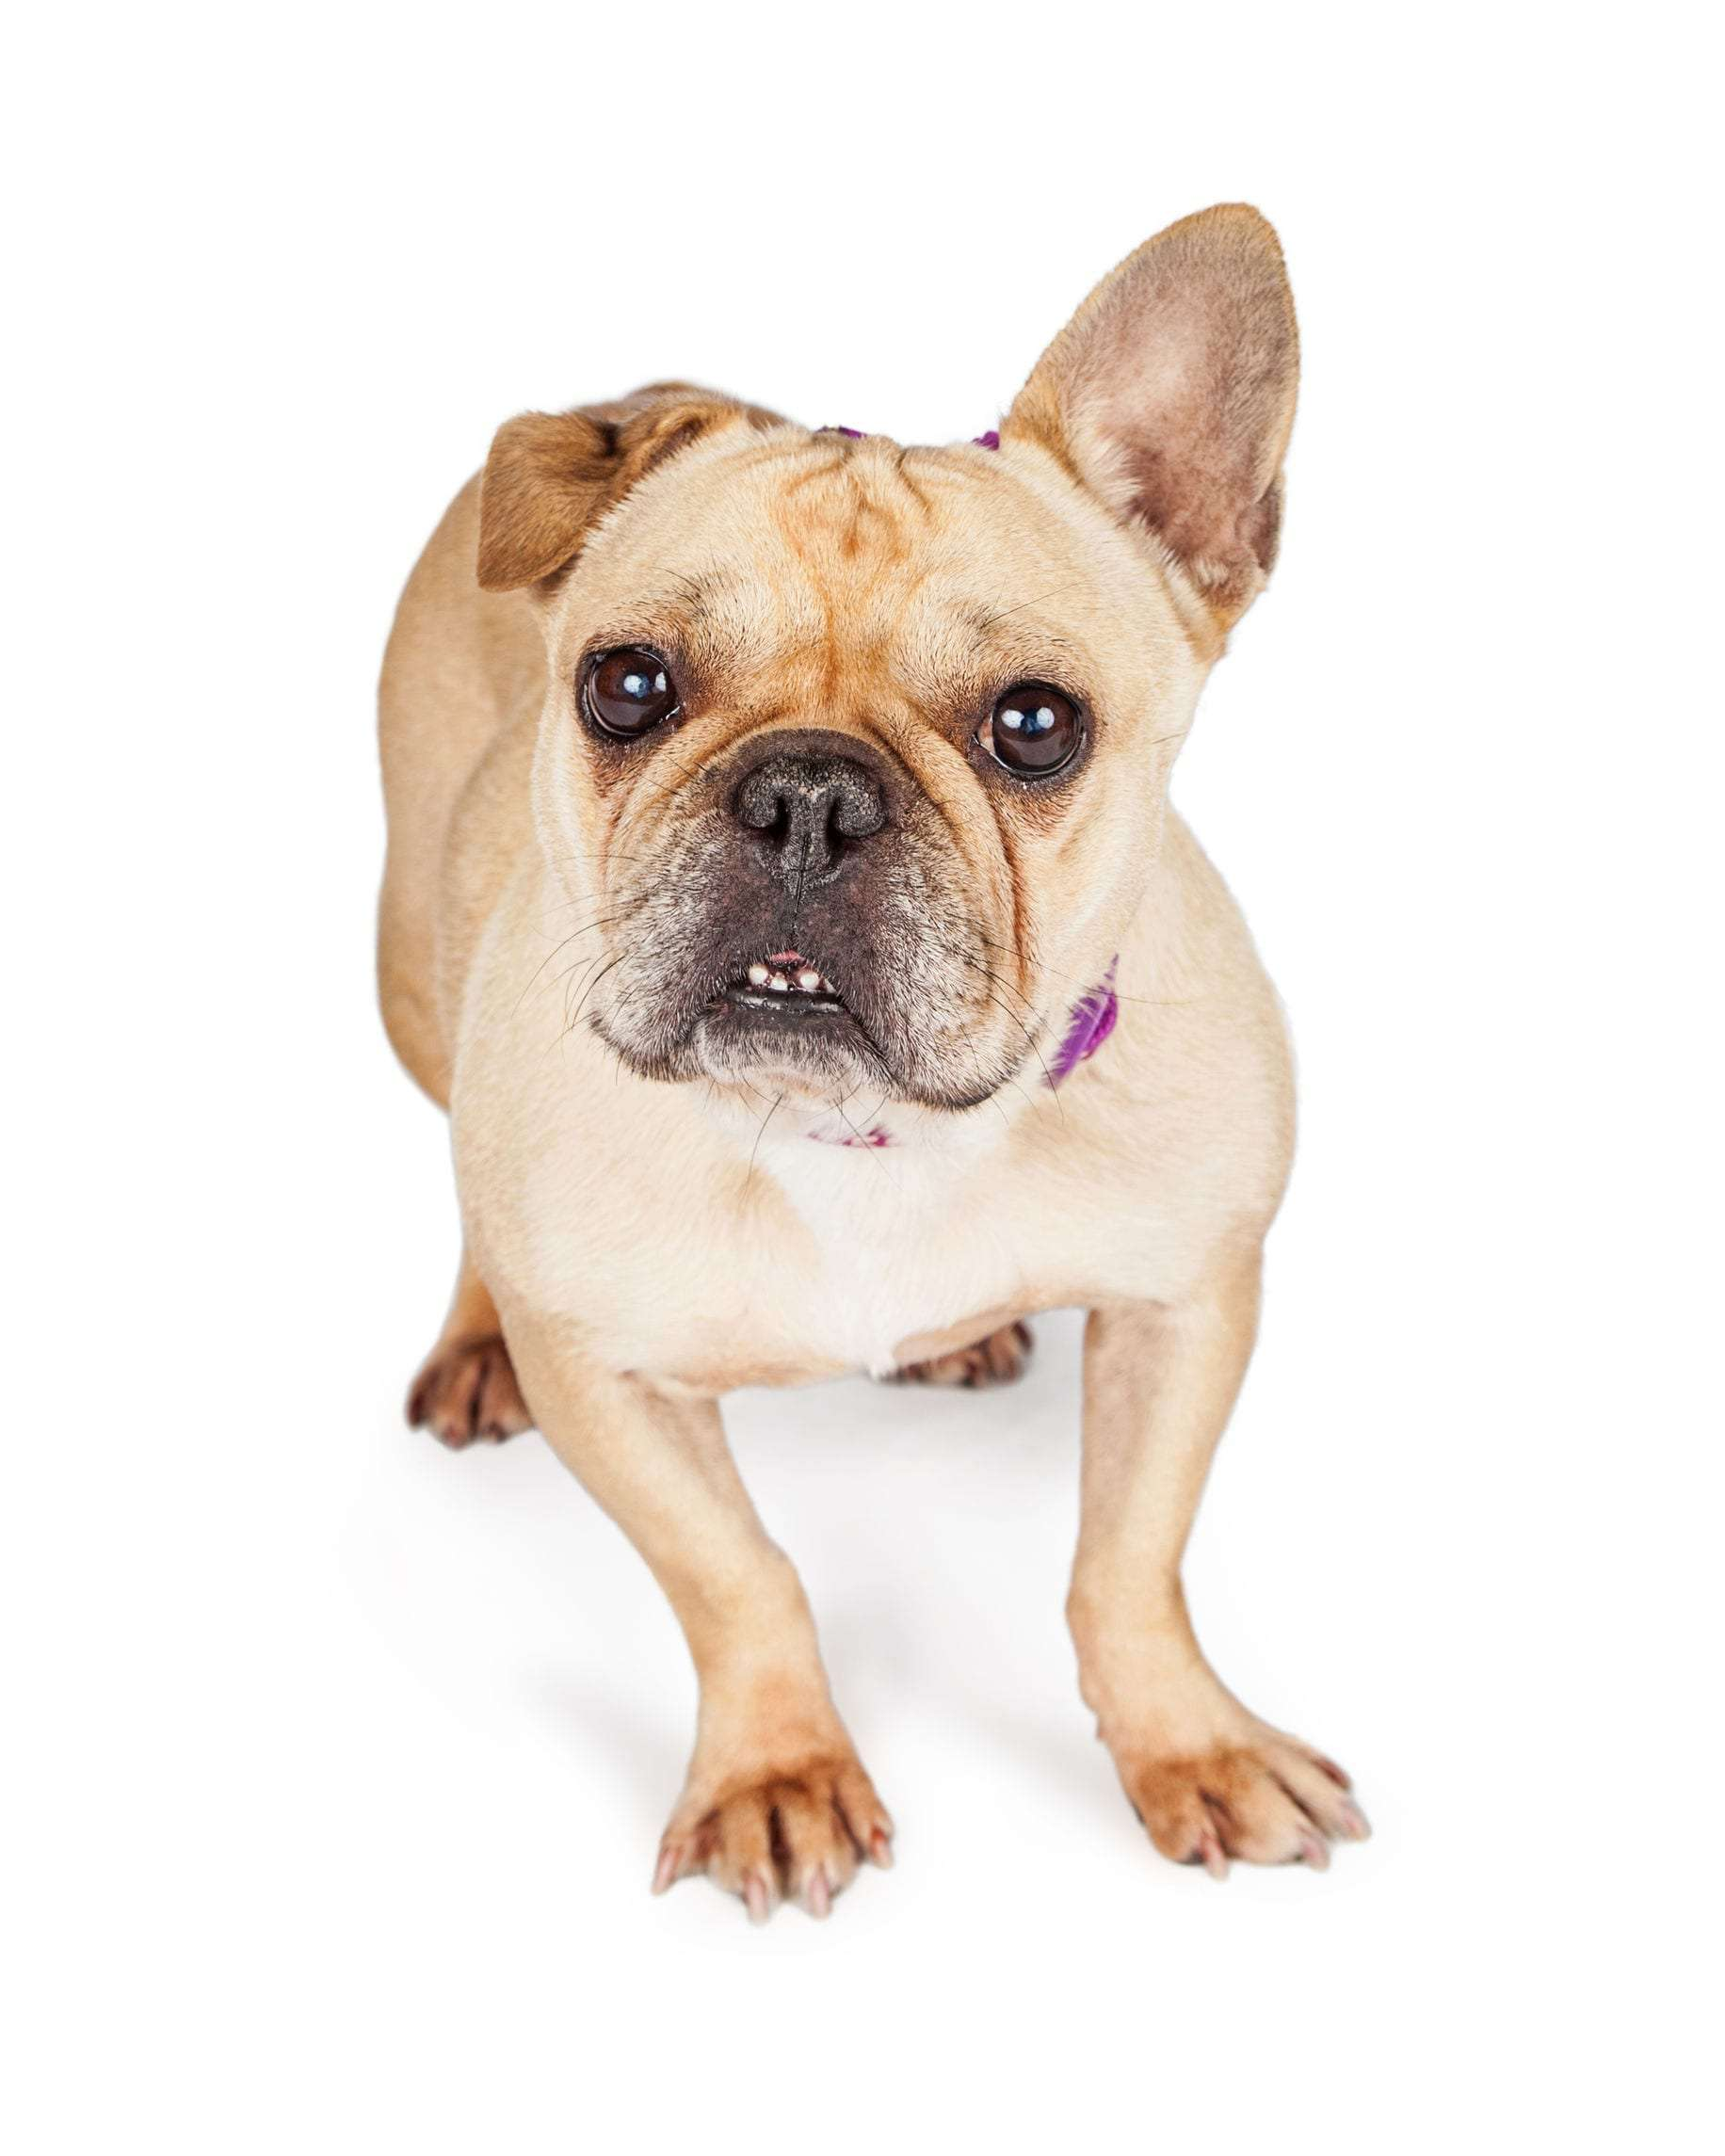 ear infections in dogs | Dr. Marty